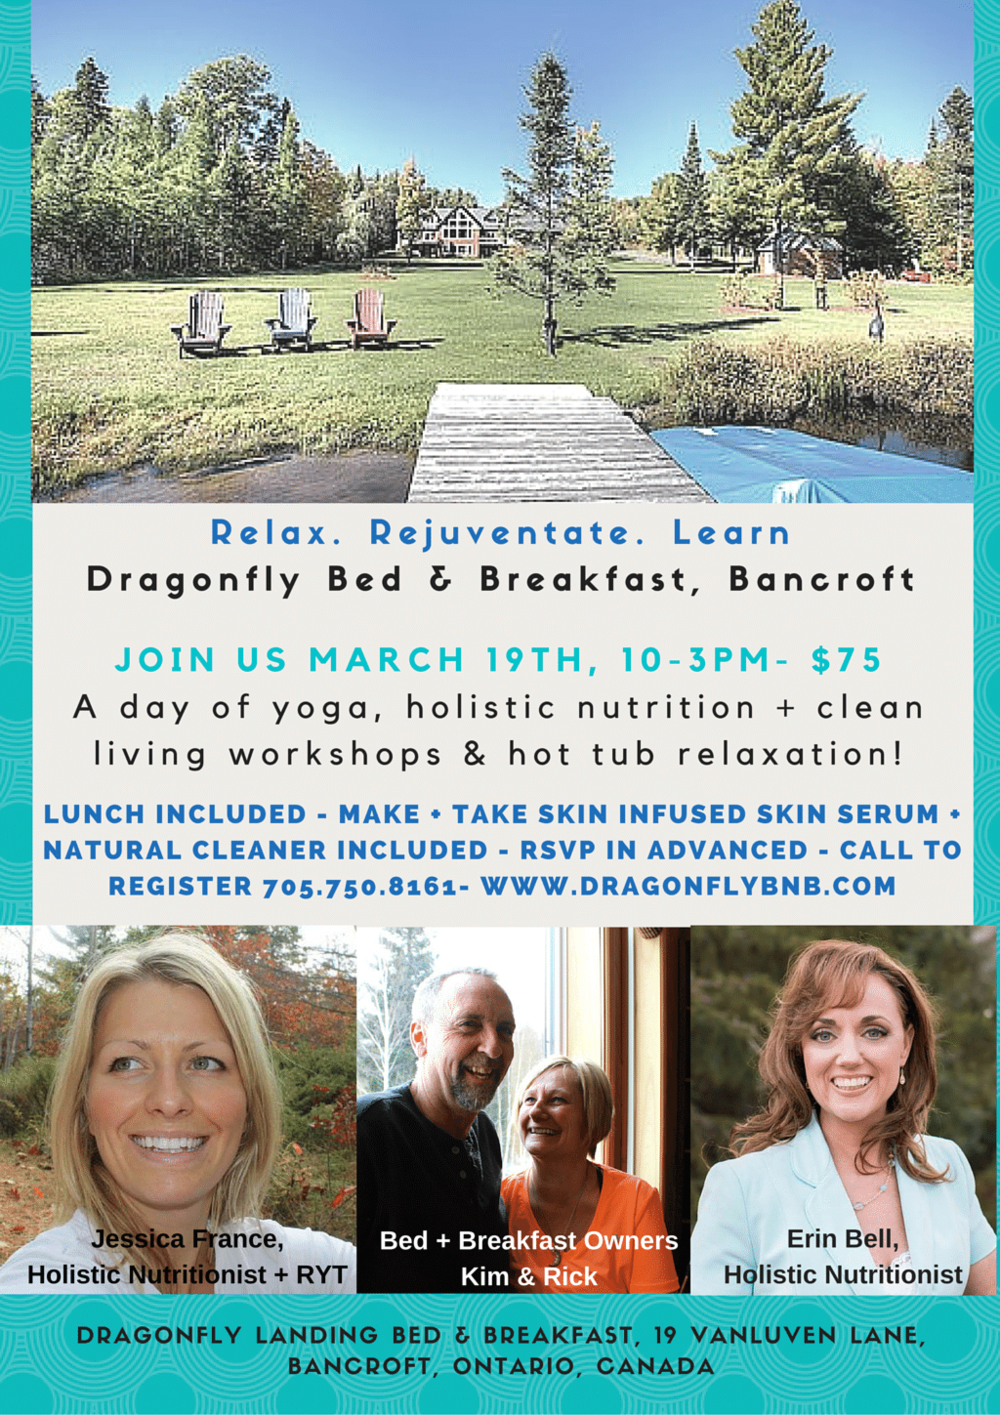 Join us at Dragonfly Landing B&B, in Bancroft Ontario, for a day of yoga, holistic nutrition, and clean living workshops.